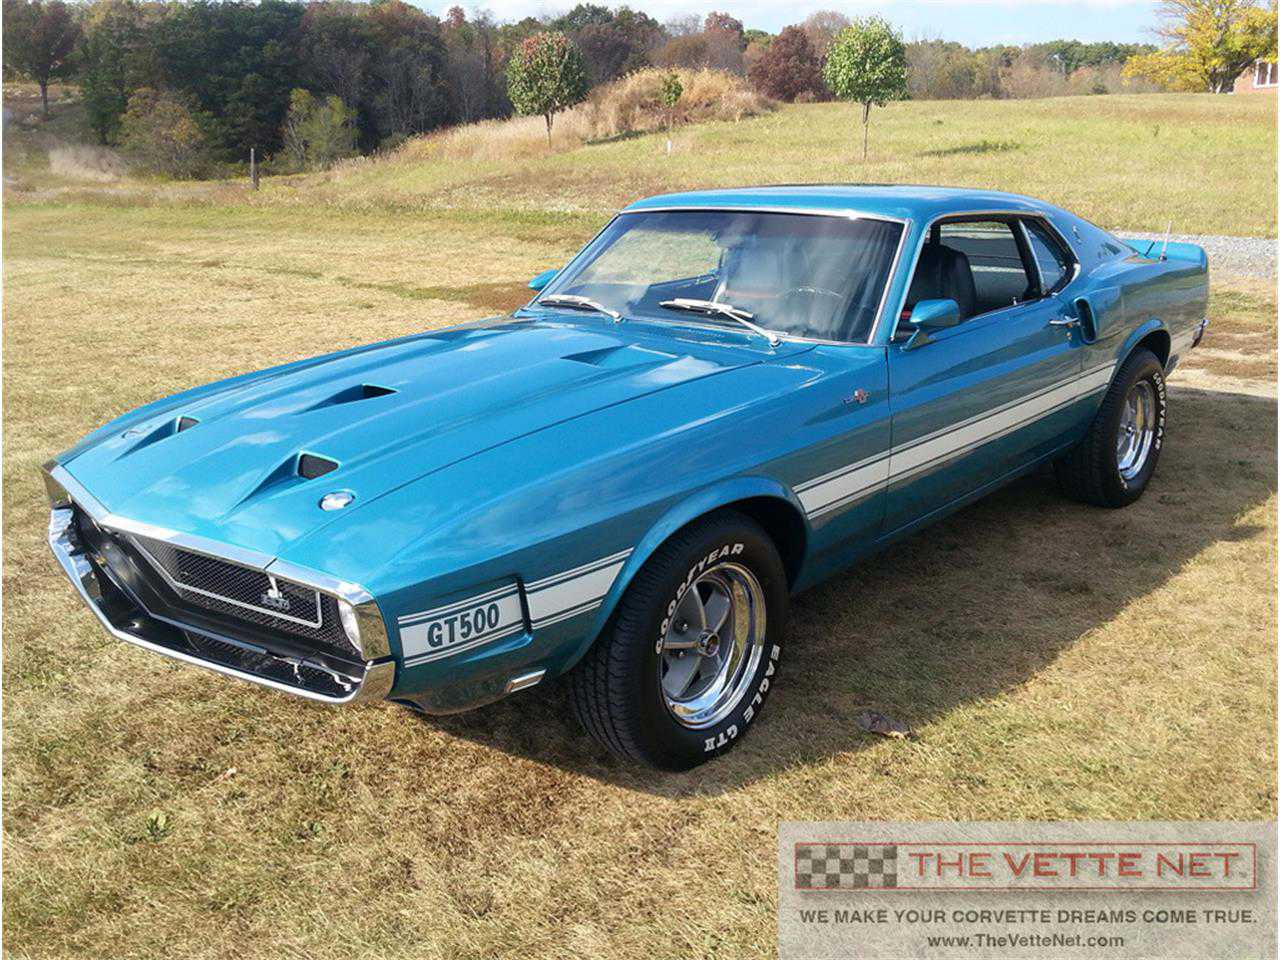 1969 Ford Mustang Shelby Gt500 For Sale In Sarasota Fl 9f02r480223 Mach 1 Gulfstream Aqua